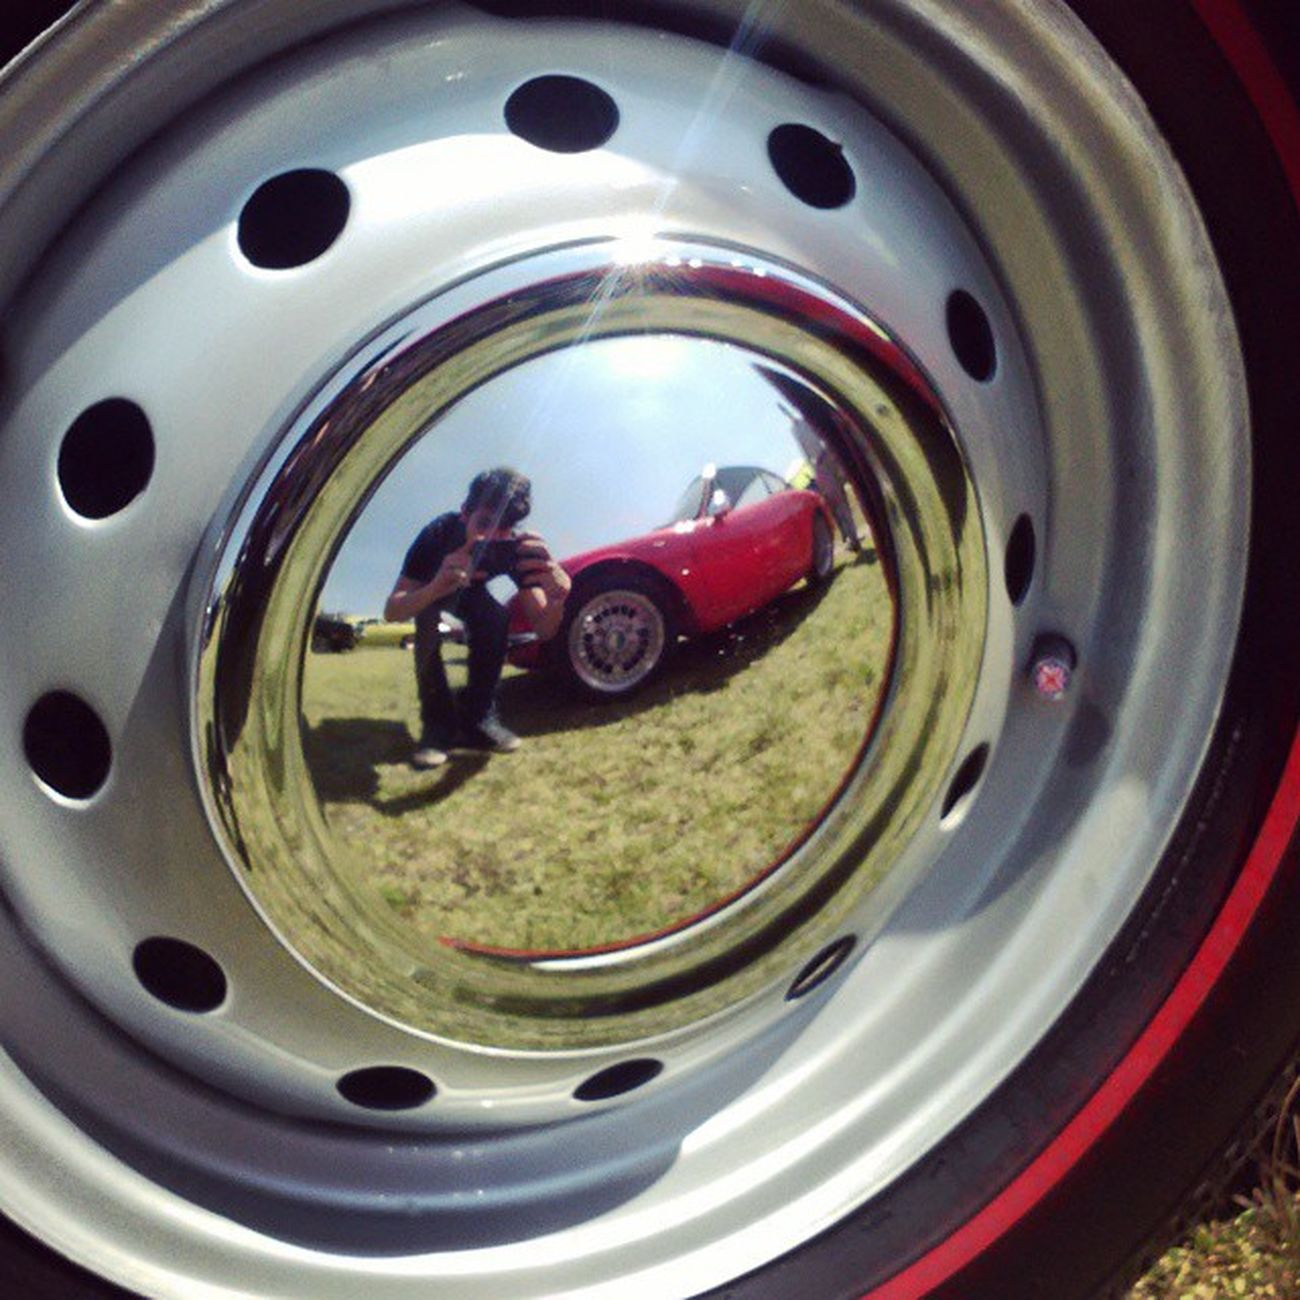 rimception - Motor Fest 2015 Throwback Motorfest Mexico Mexico City Cdmx Photoart Reflejo Outdoors Rim Photo Thats Me  Goodvibes✌️ Coche Vintage Cars Classic Car Redcar Renault Alpine